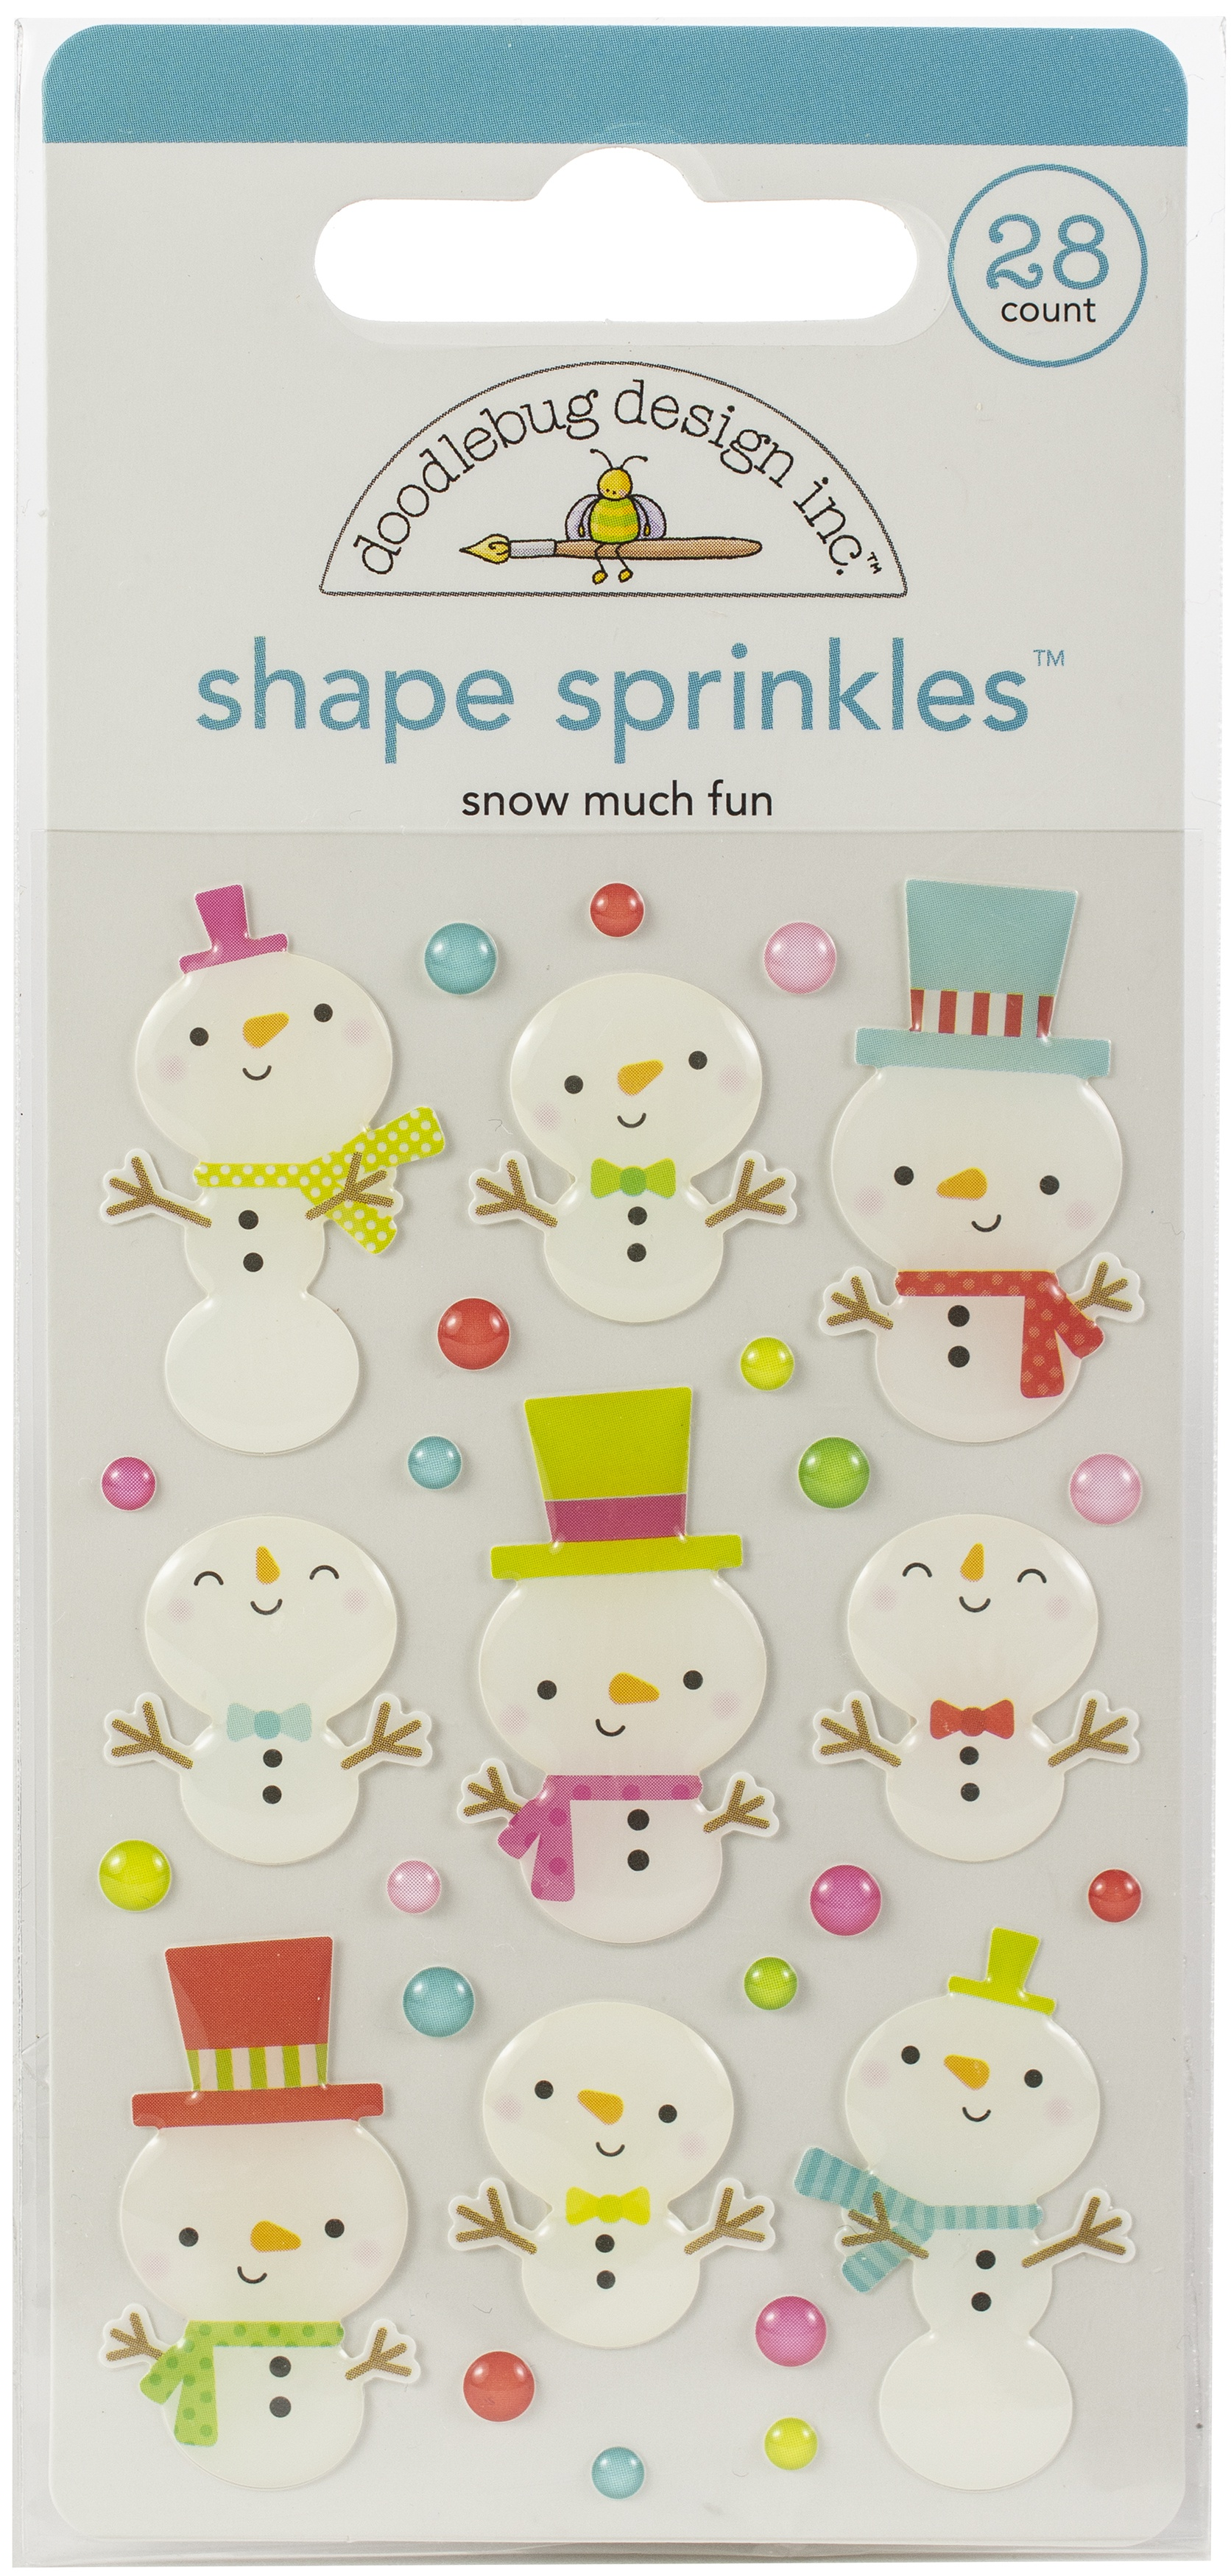 EMB - CHRISTMAS TOWN SHAPE  SPRINKLES SNOW MUCH FUN